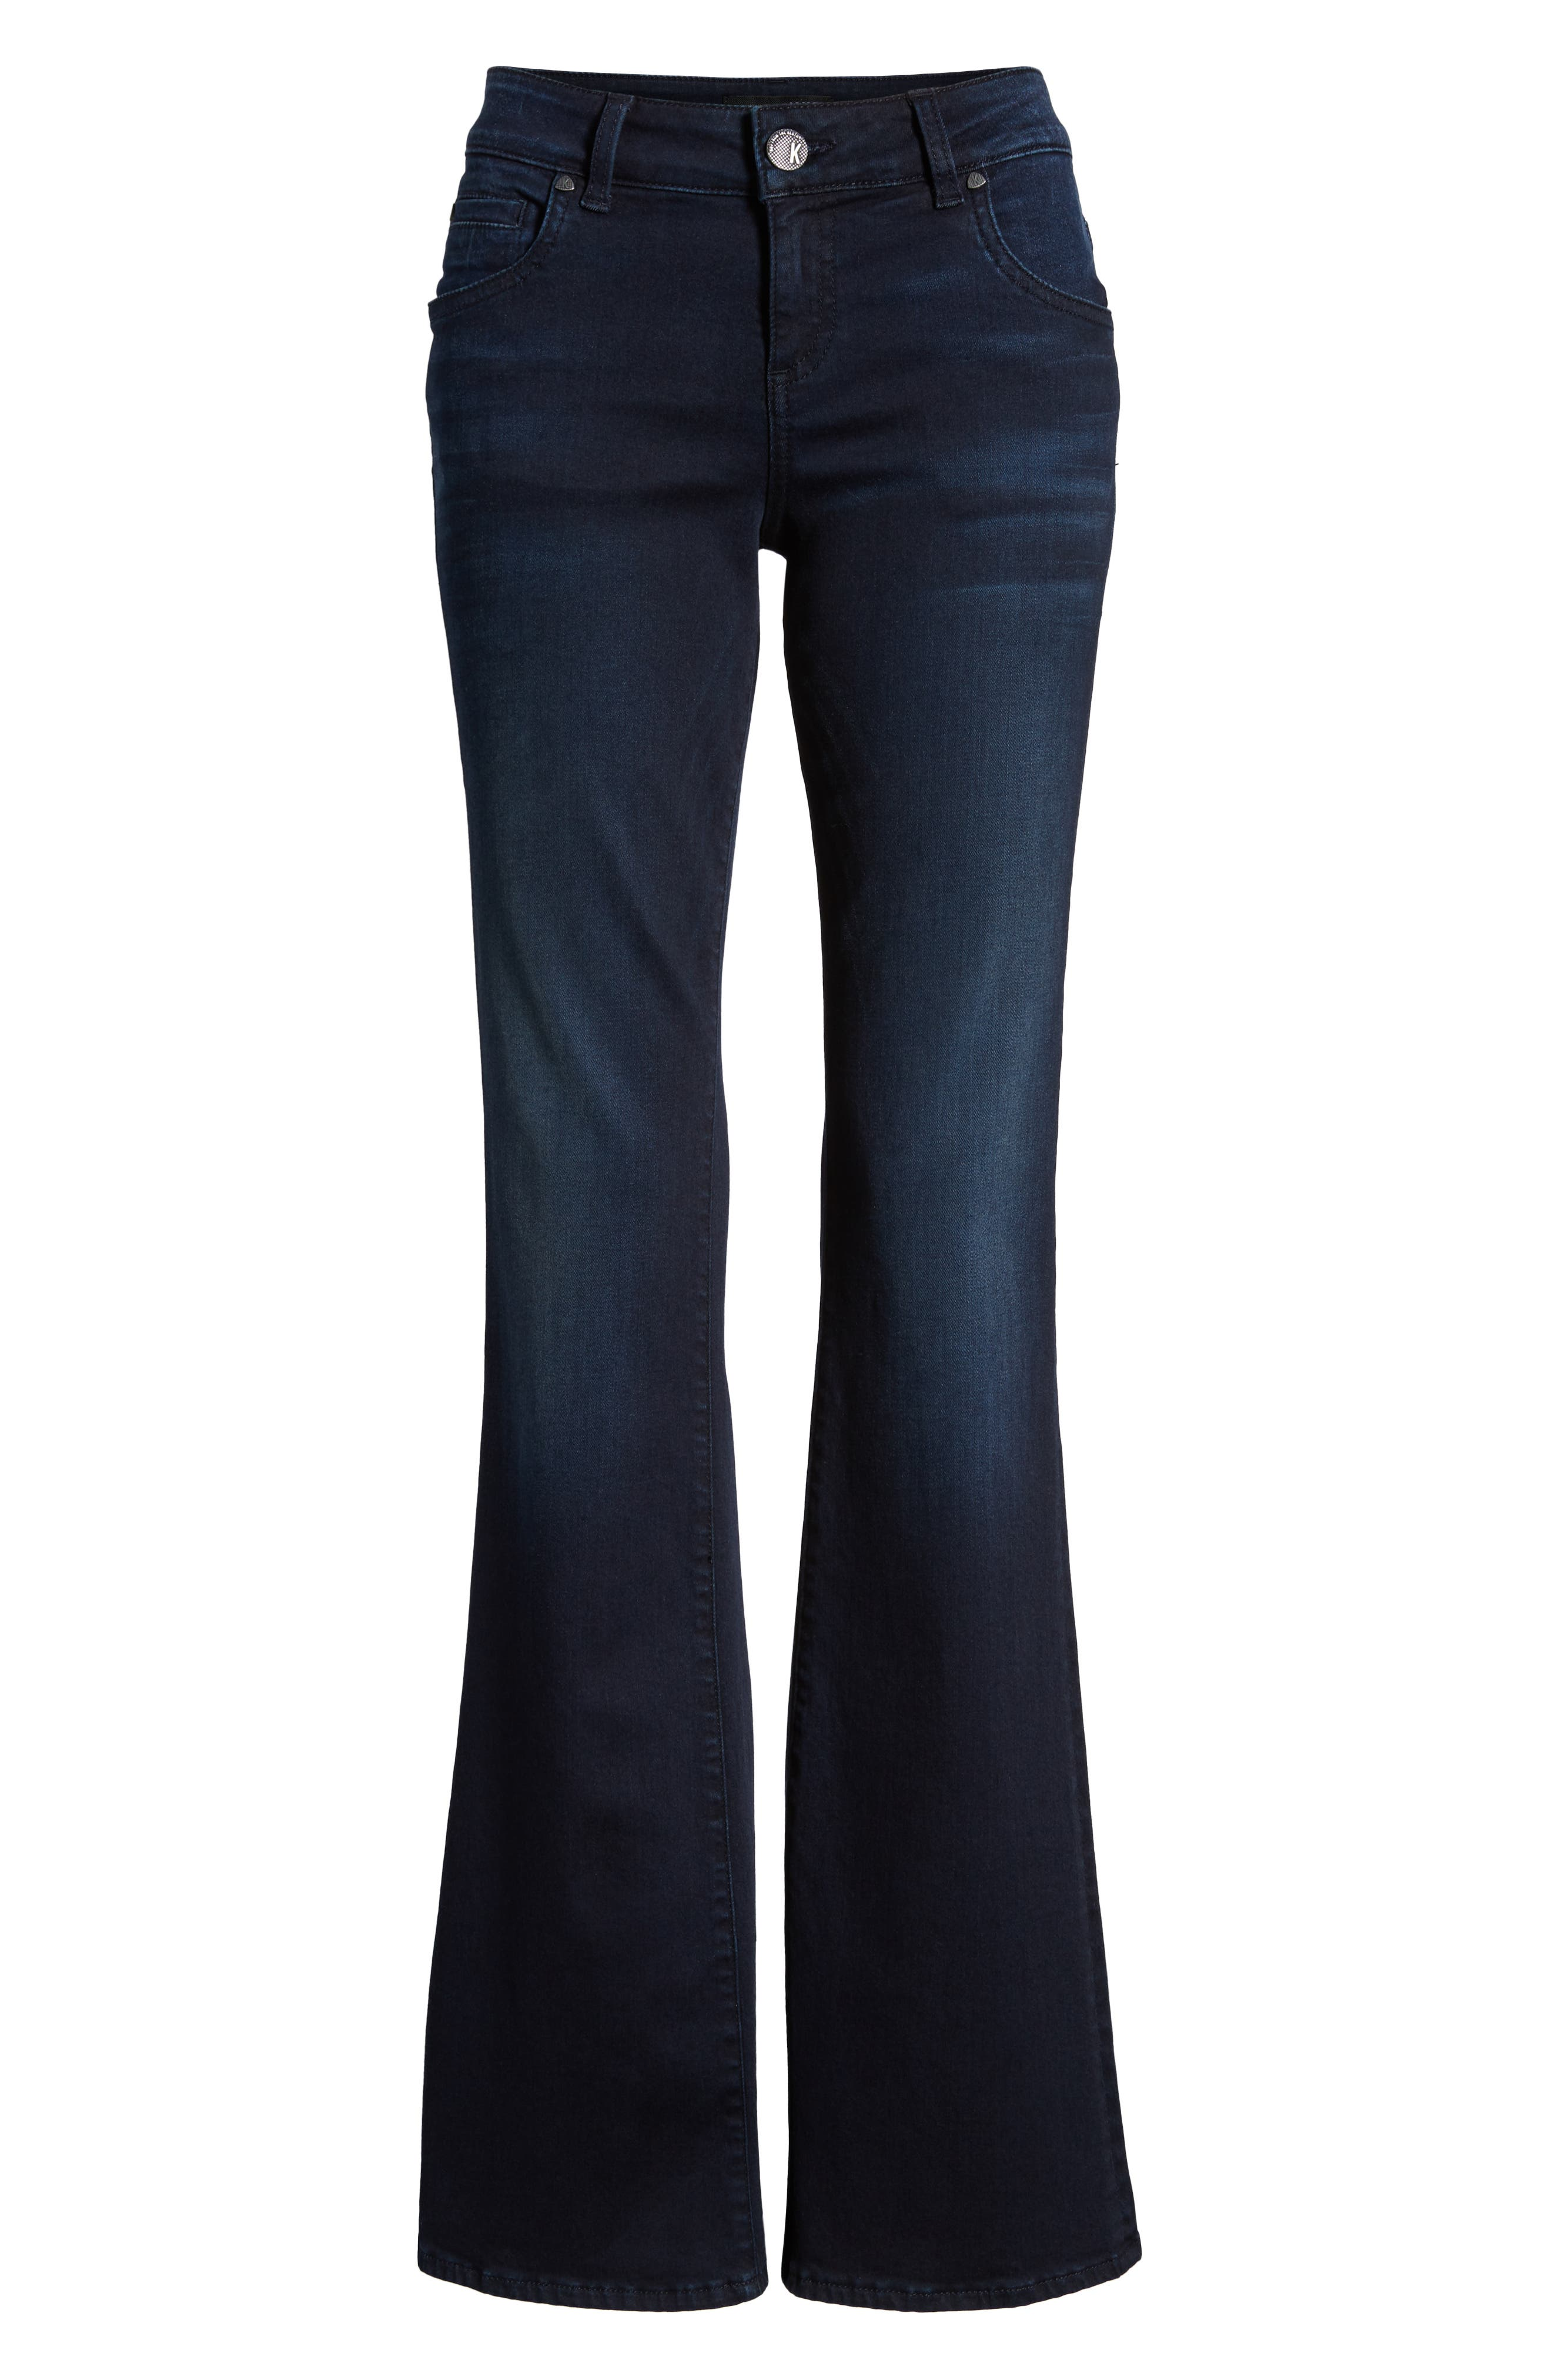 Natalie Stretch Bootleg Jeans,                             Alternate thumbnail 6, color,                             LIBERATING